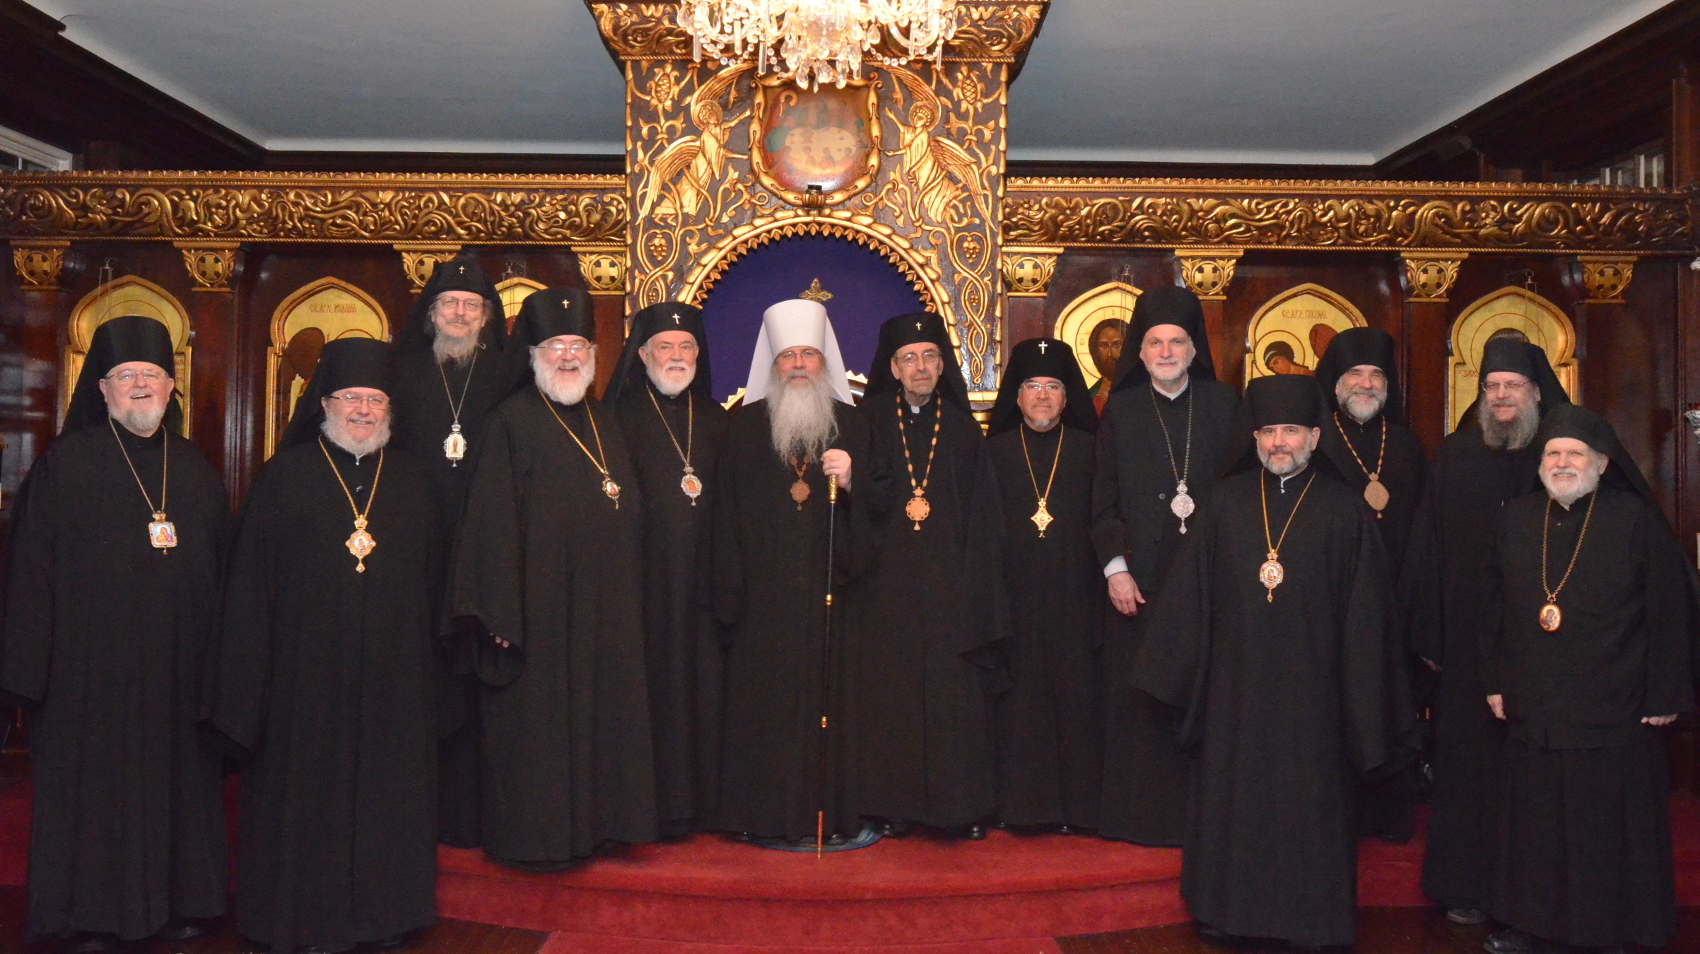 Members of the Holy Synod of Bishops of The Orthodox Church in America